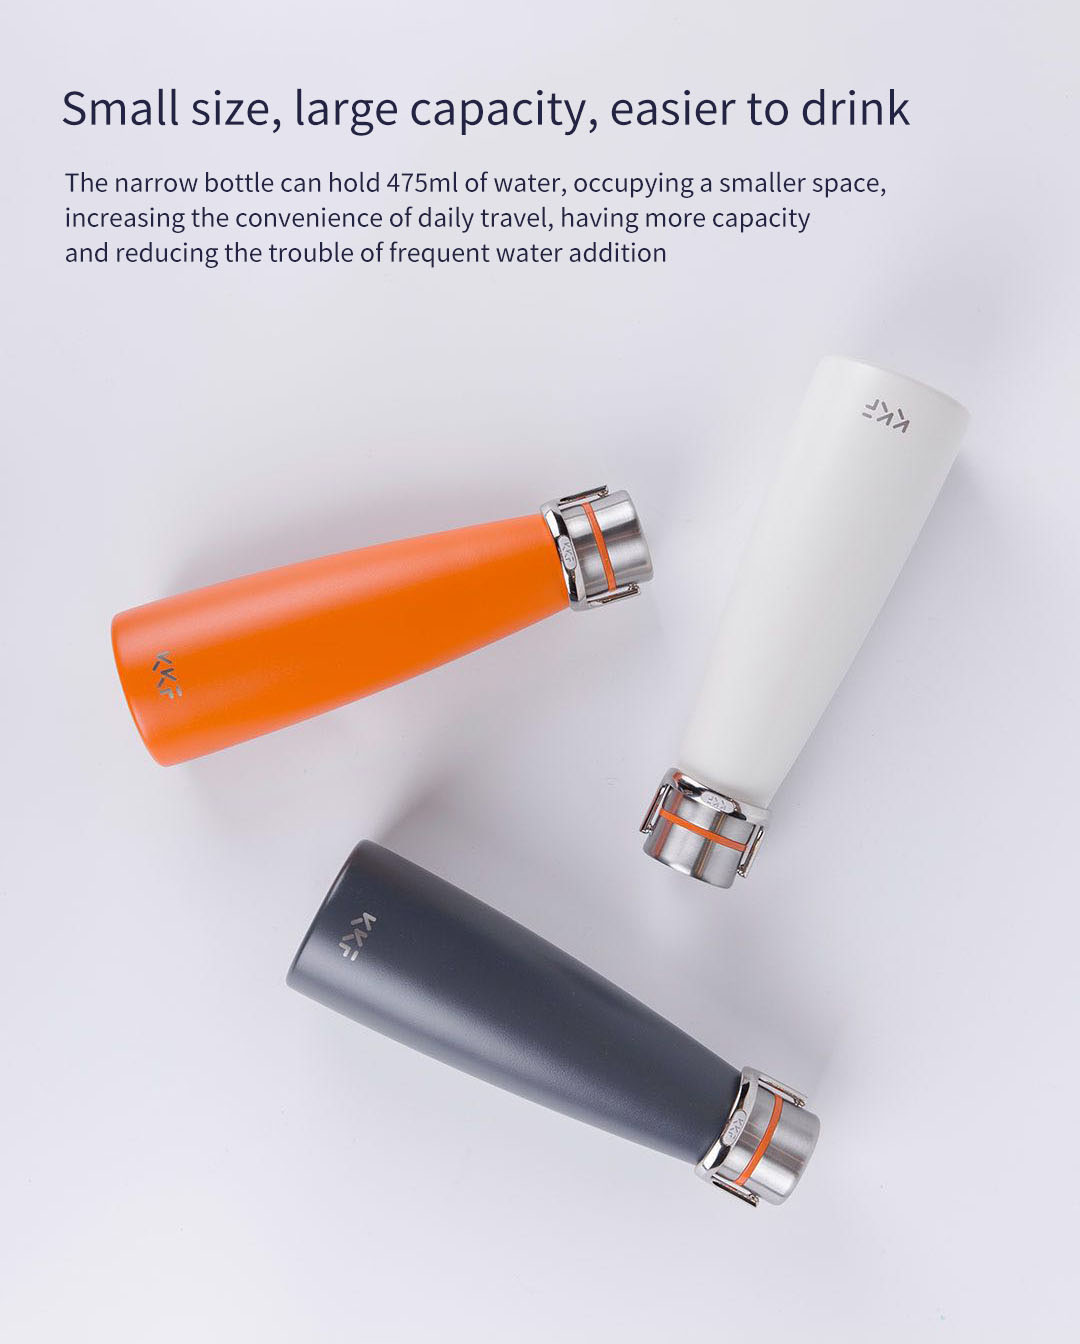 KISSKISSFISH SU-47WS 475M Vacuum Thermos Water Bottle Thermos Cup Portable Water Bottles 24